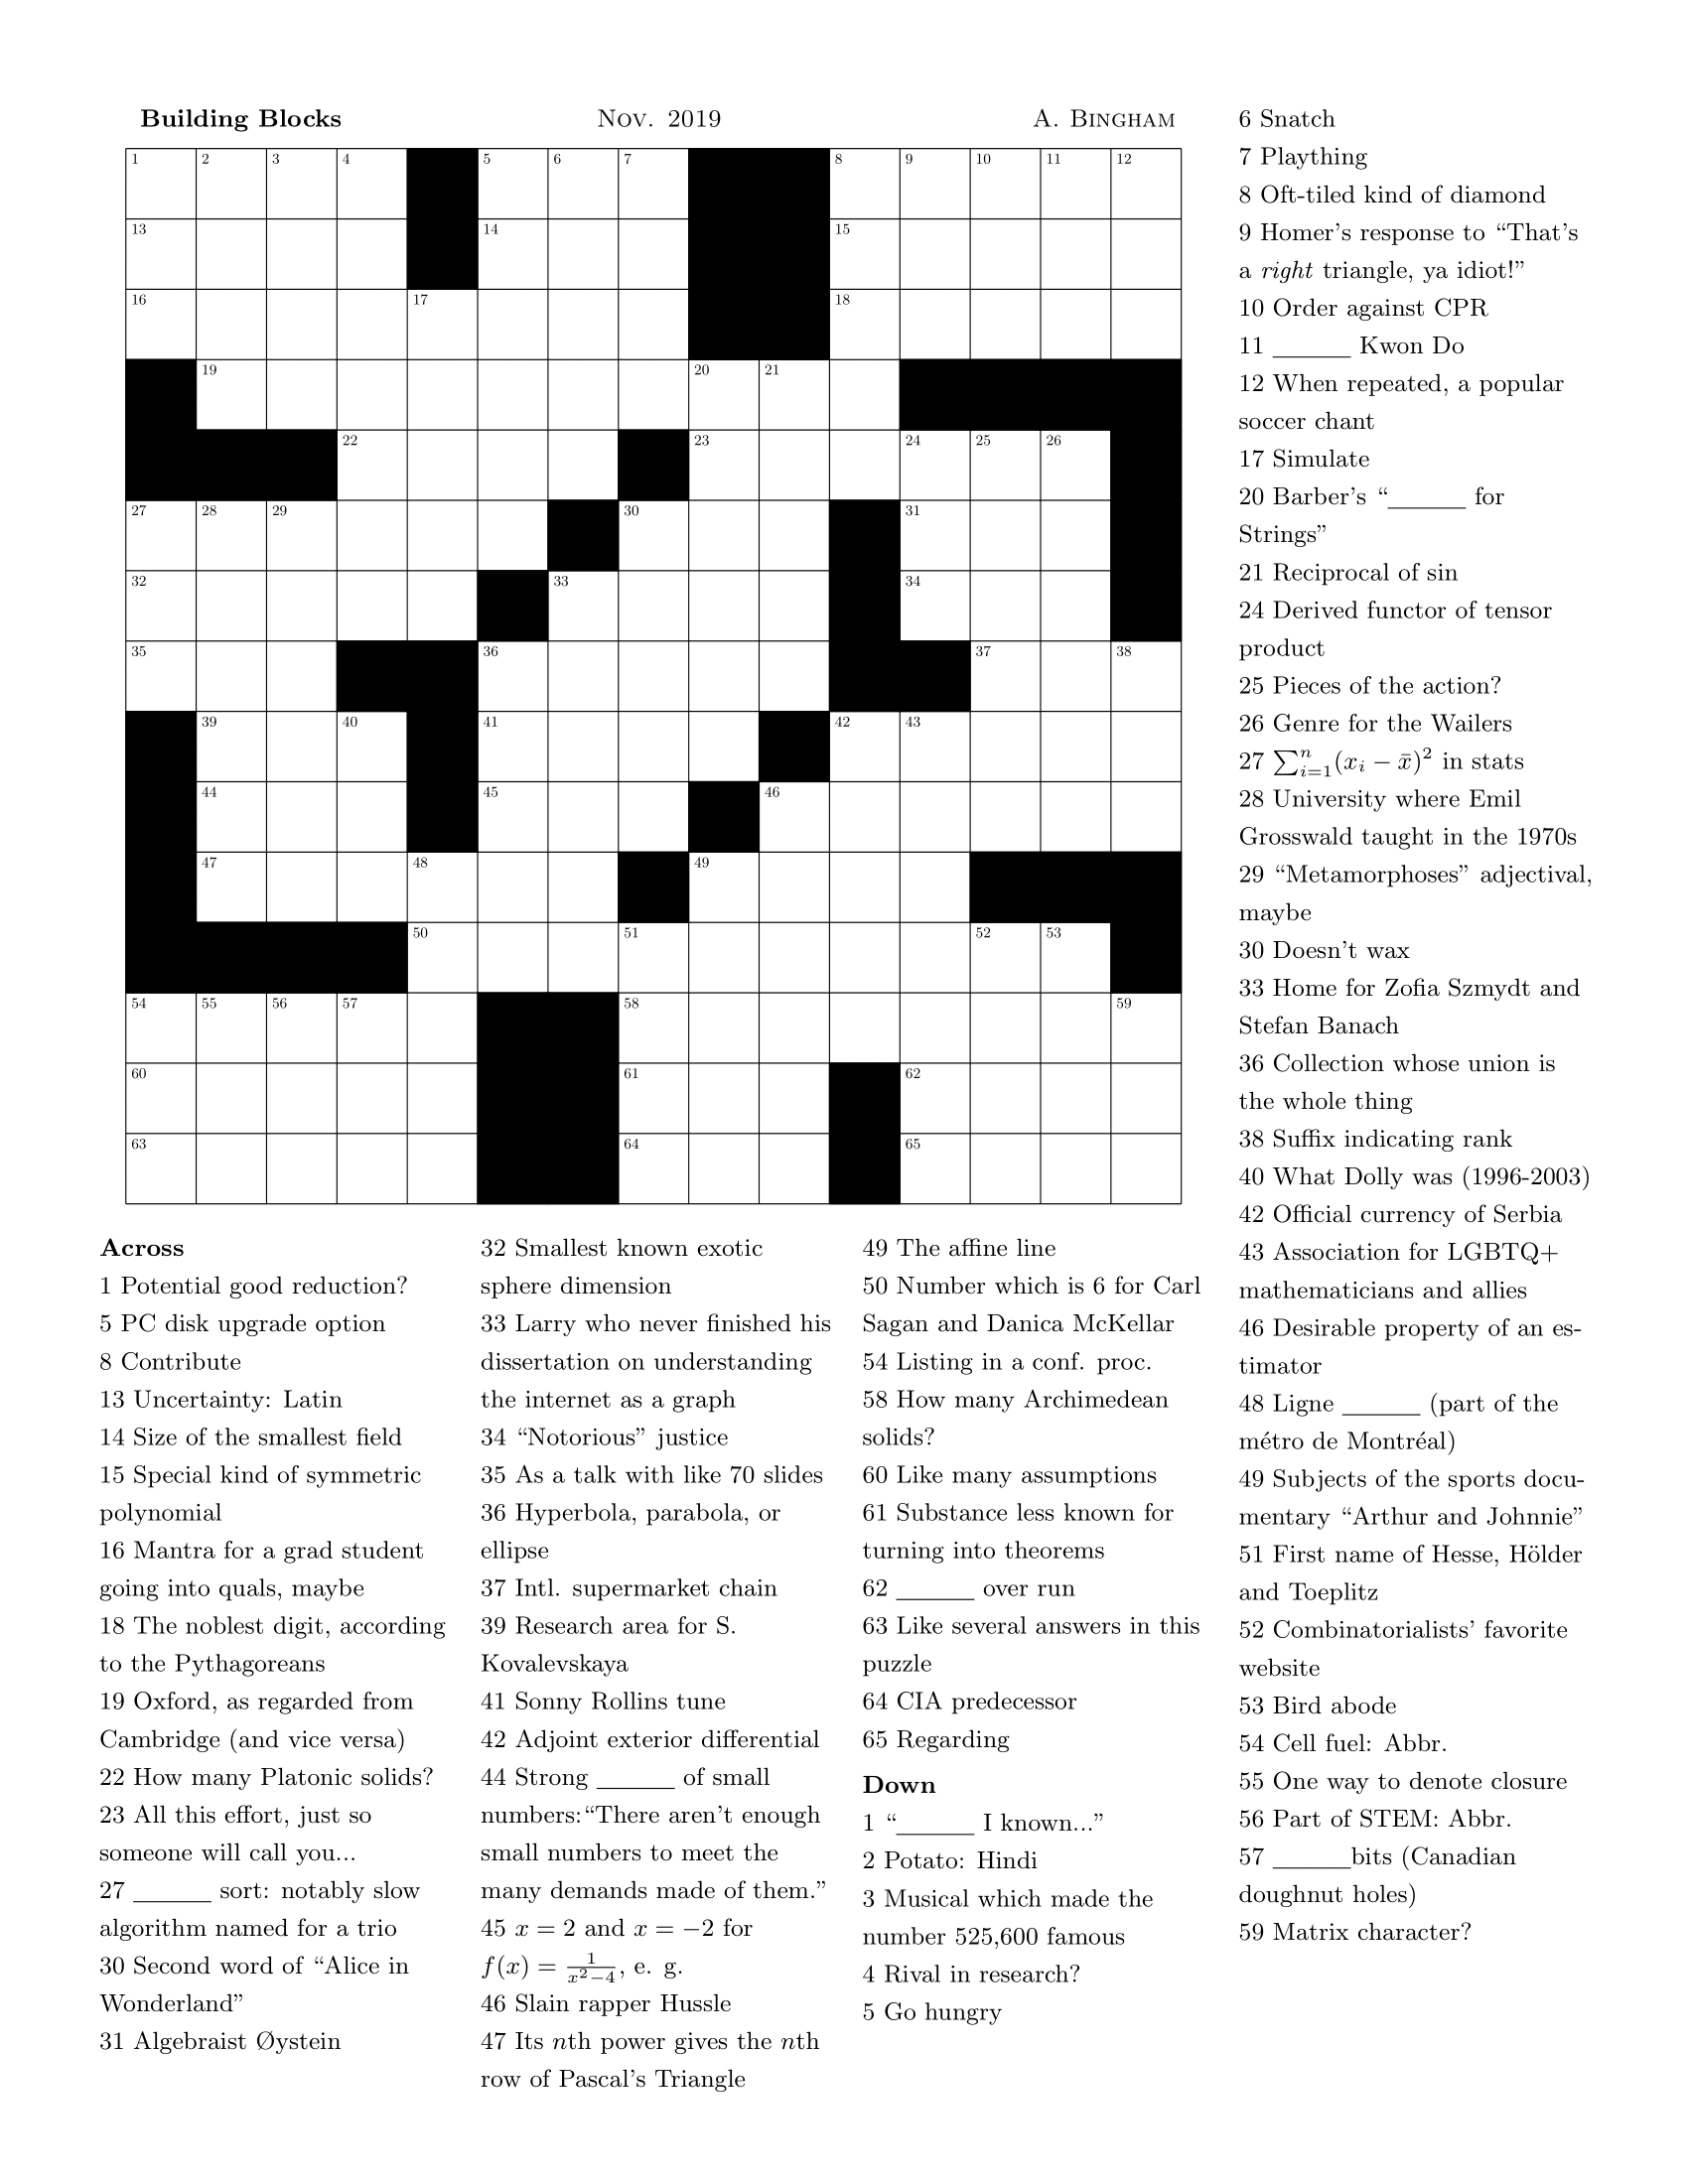 Crossword Or Diversion As A Vehicle For Conversation On Power And Usage